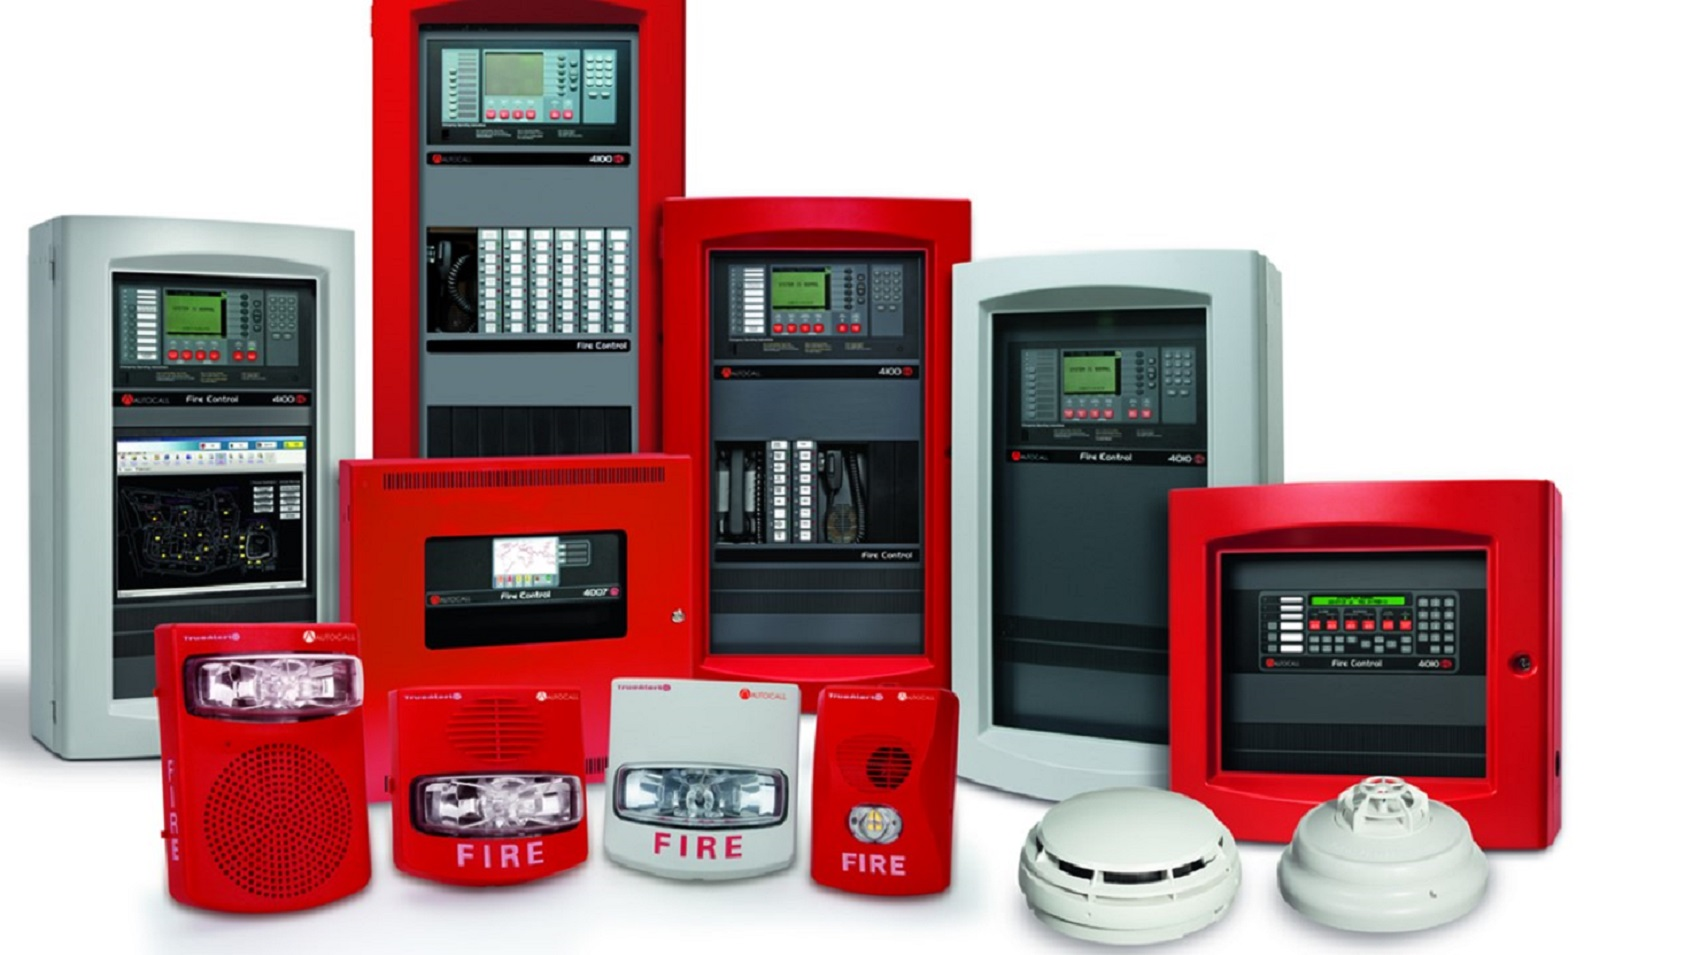 Fire Alarm System   Innovision Building Safety & Security